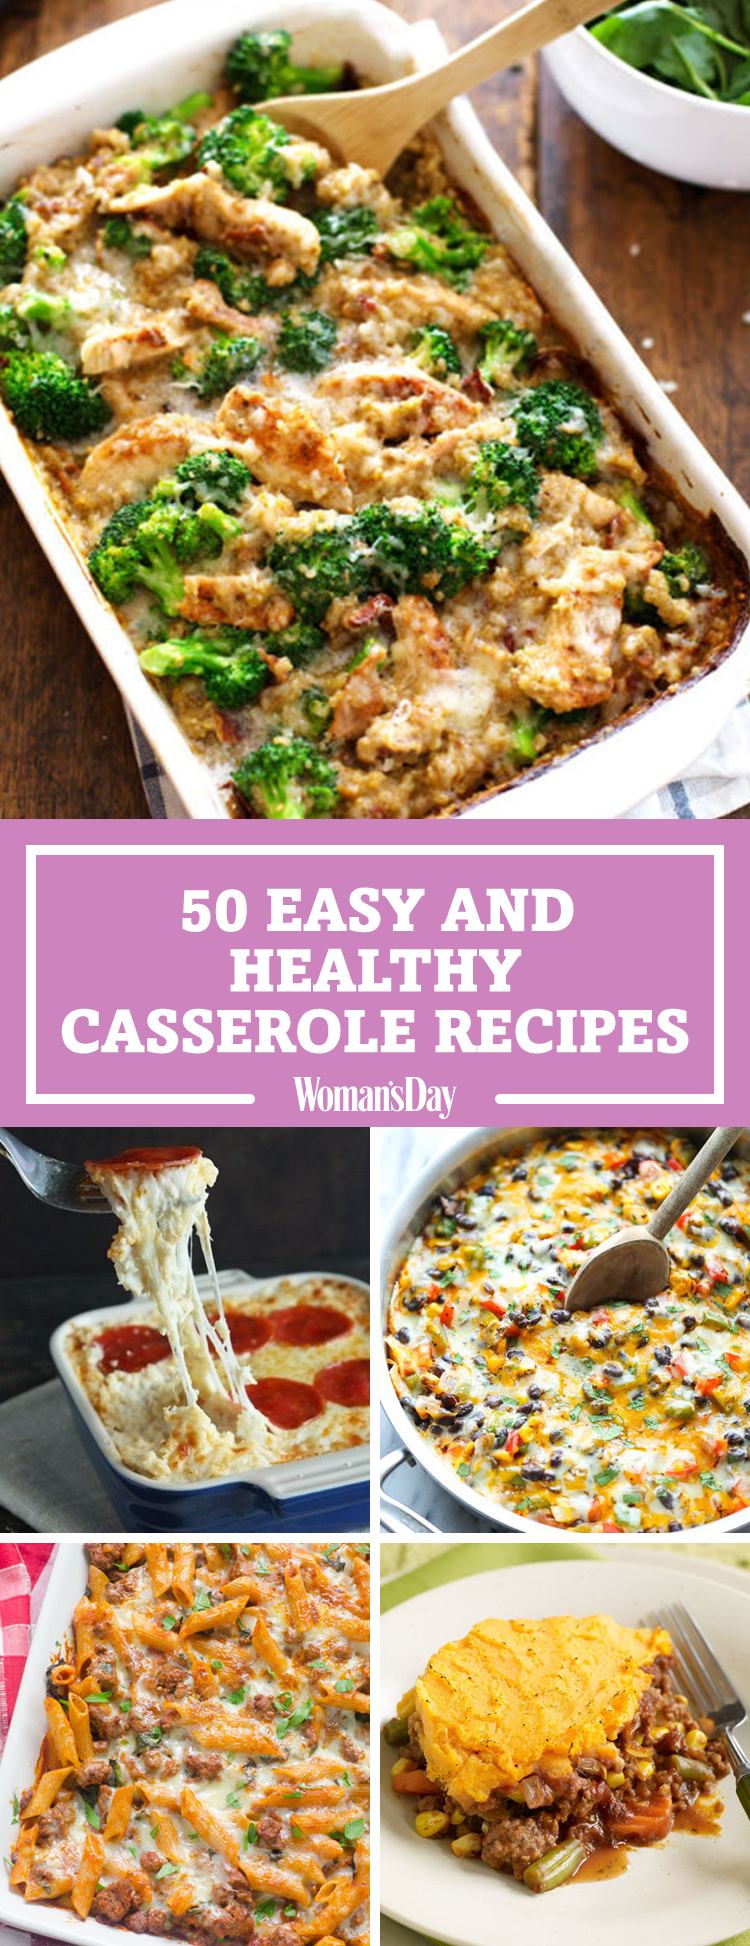 Easy recipes healthy